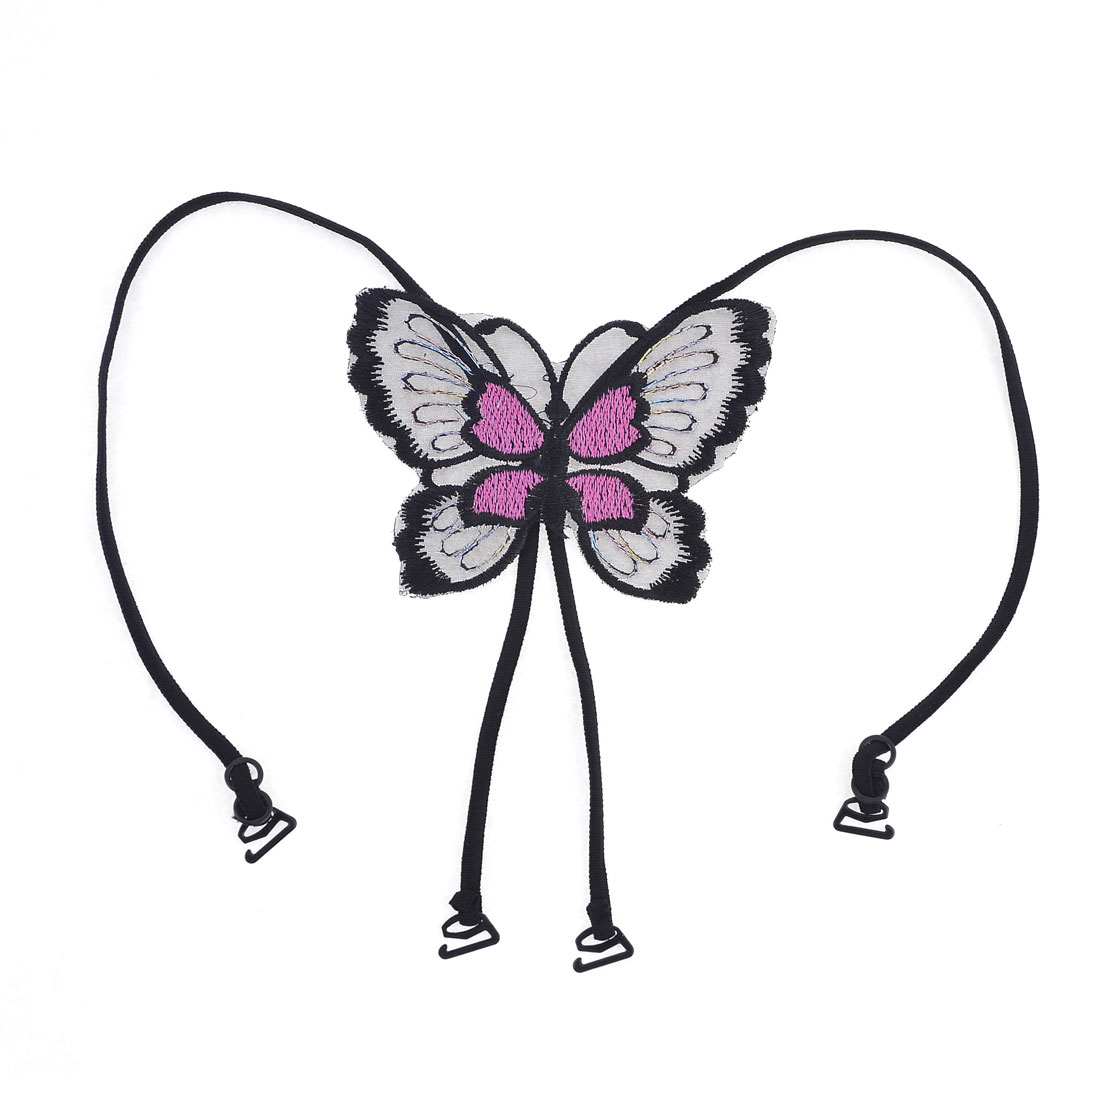 Women Fuchsia Butterfly Accent Adjustable Flexible Cross Back Bra Shoulder Strap